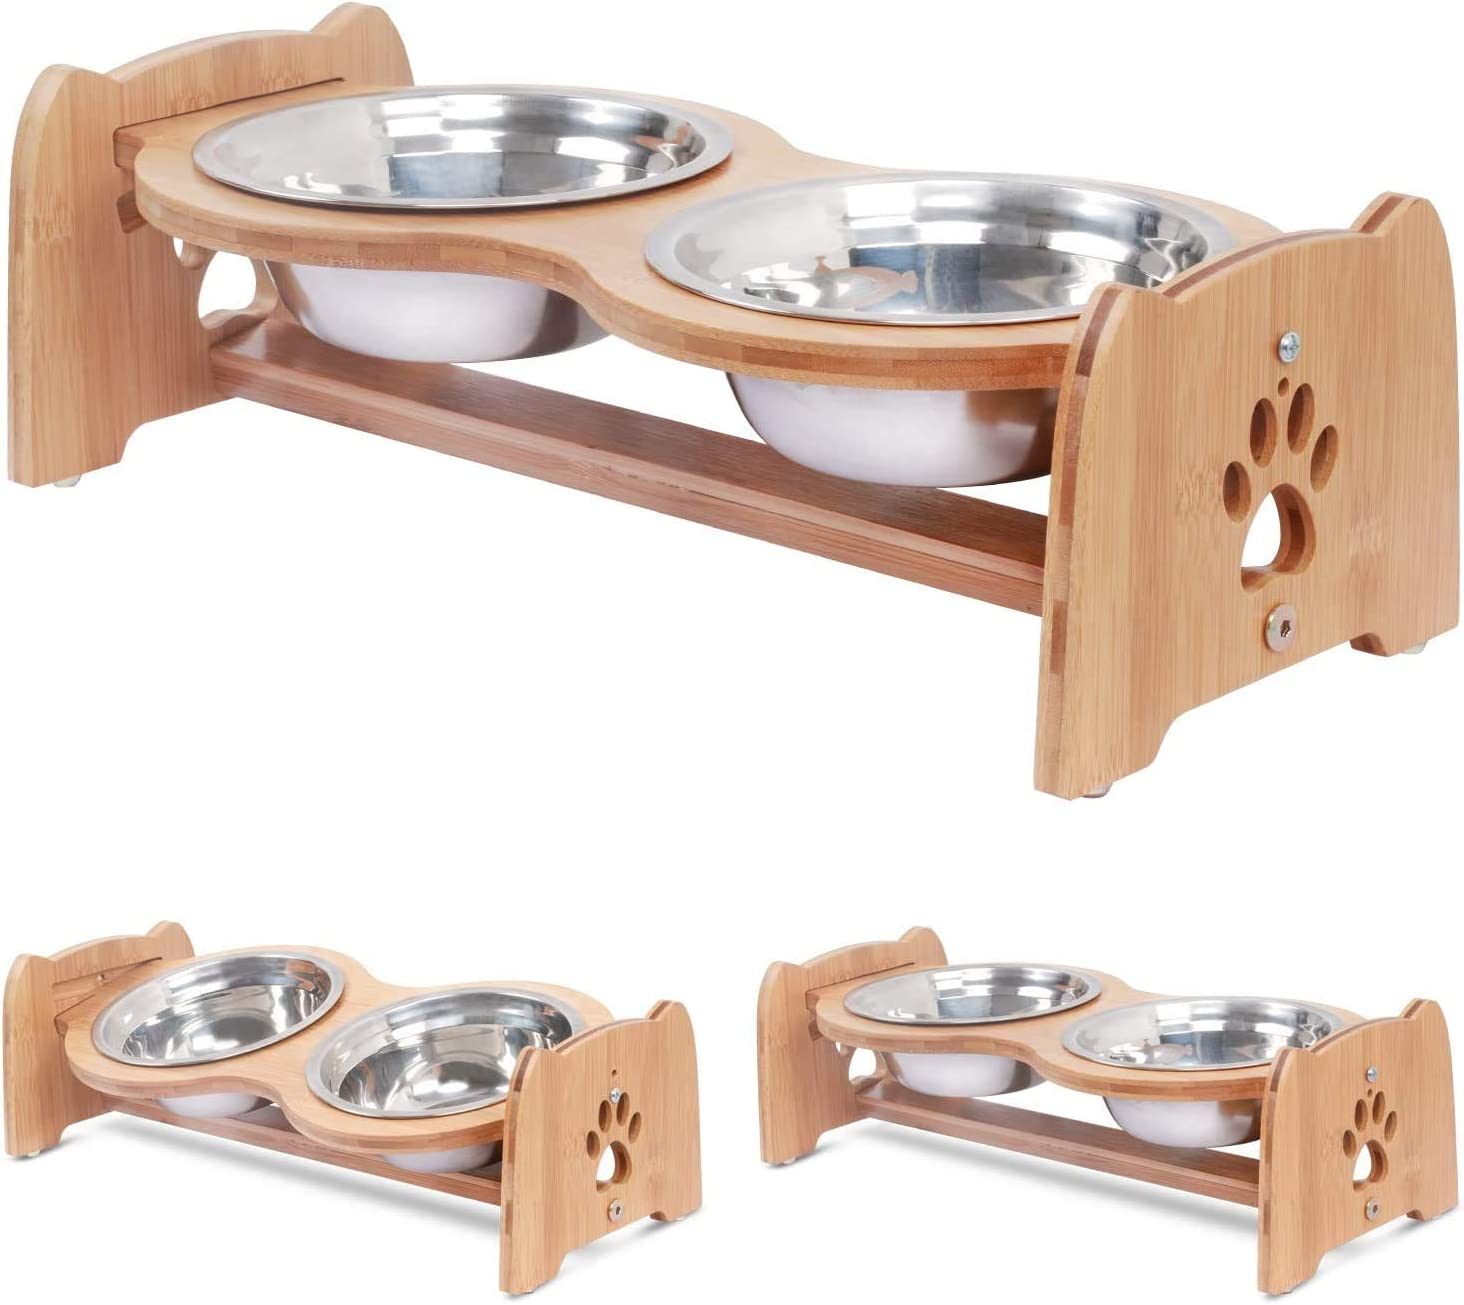 X-ZONE PET Raised Pet Bowls for Cats and Dogs, Adjustable Bamboo Elevated Dog Cat Food and Water Bowls Stand Feeder with 2 Stainless Steel Bowls and Anti Slip Feet (Height 5.1